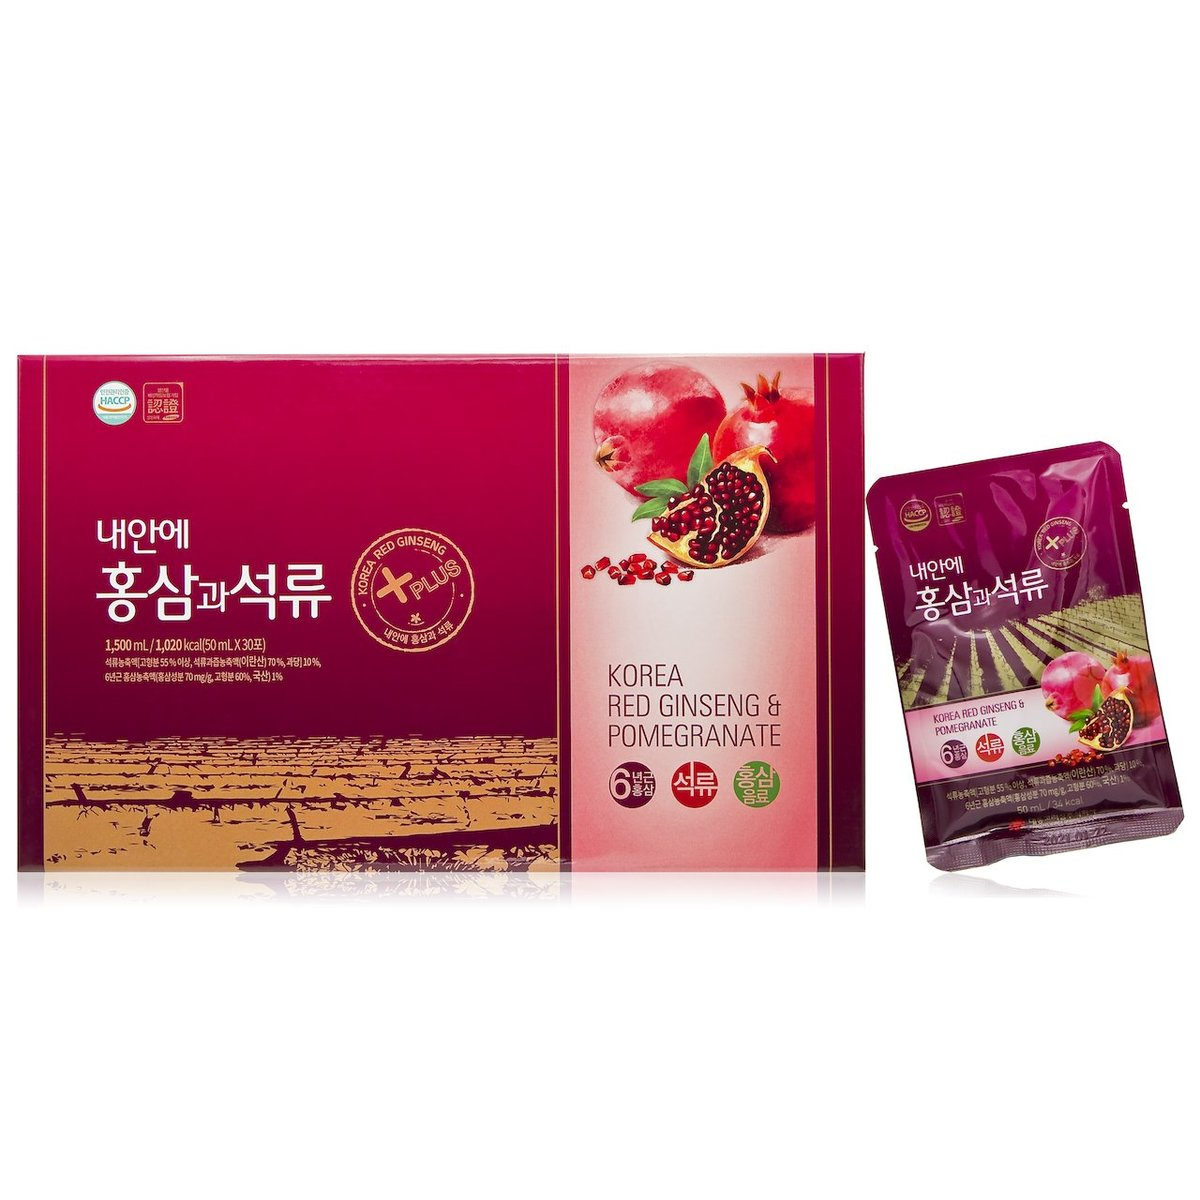 Korean Red Ginseng and Pomegranate Drink Gift Set (30pcs)